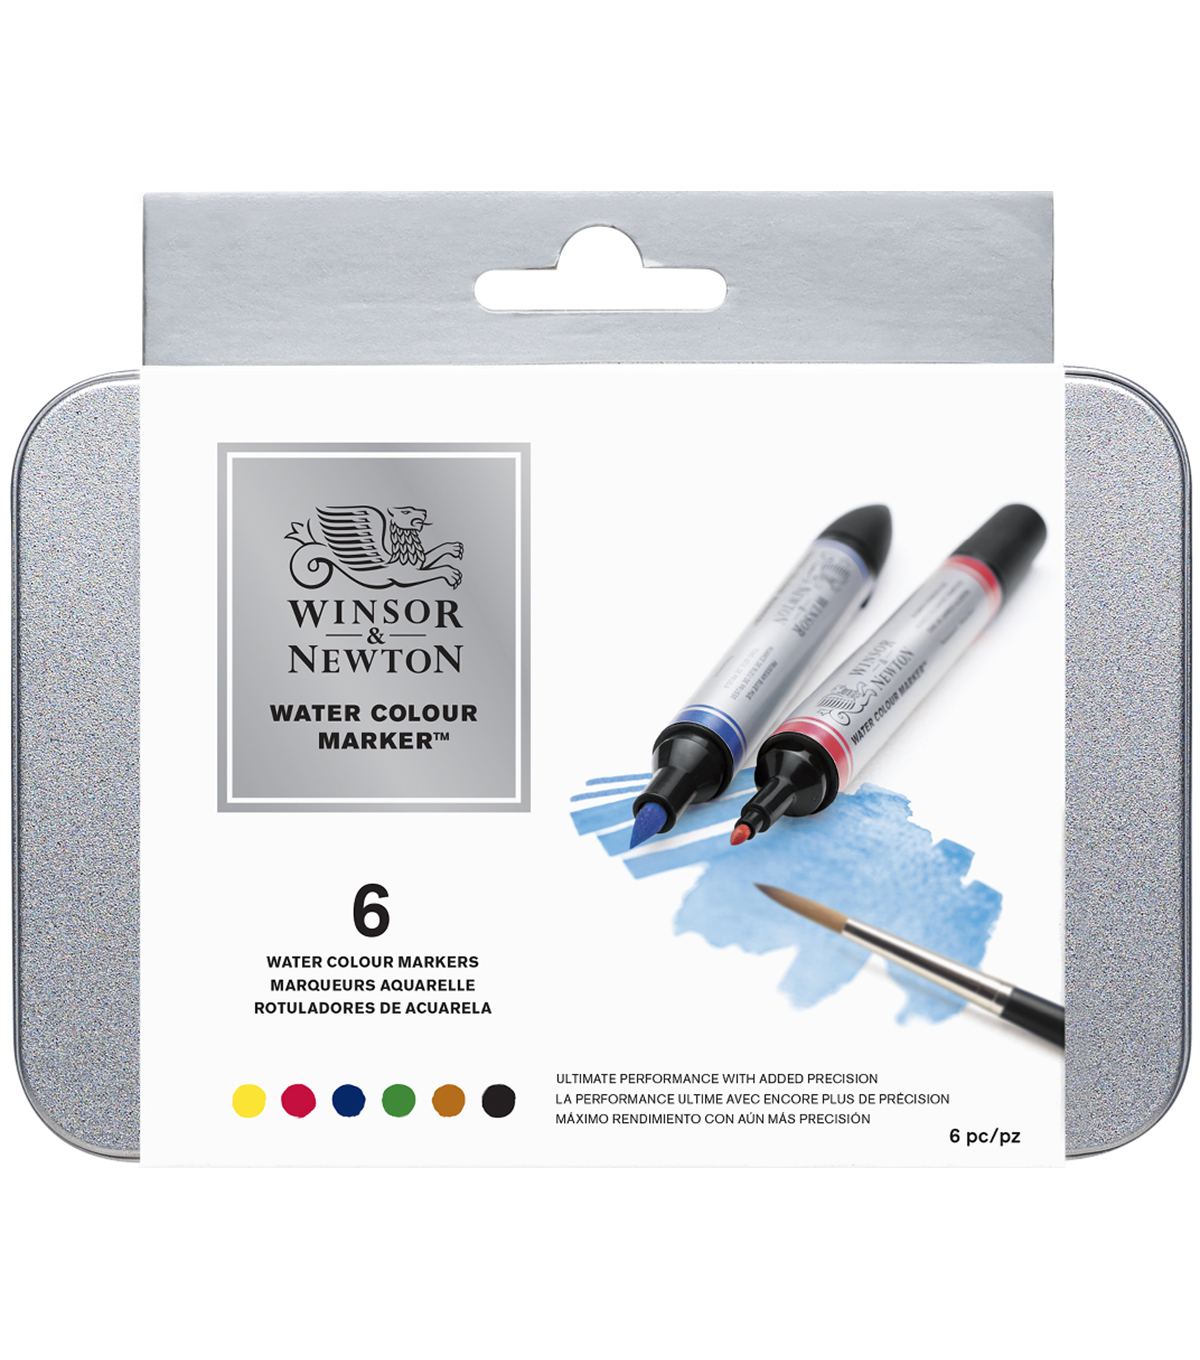 Winsor & Newton Watercolor Marker Set 6 pcs